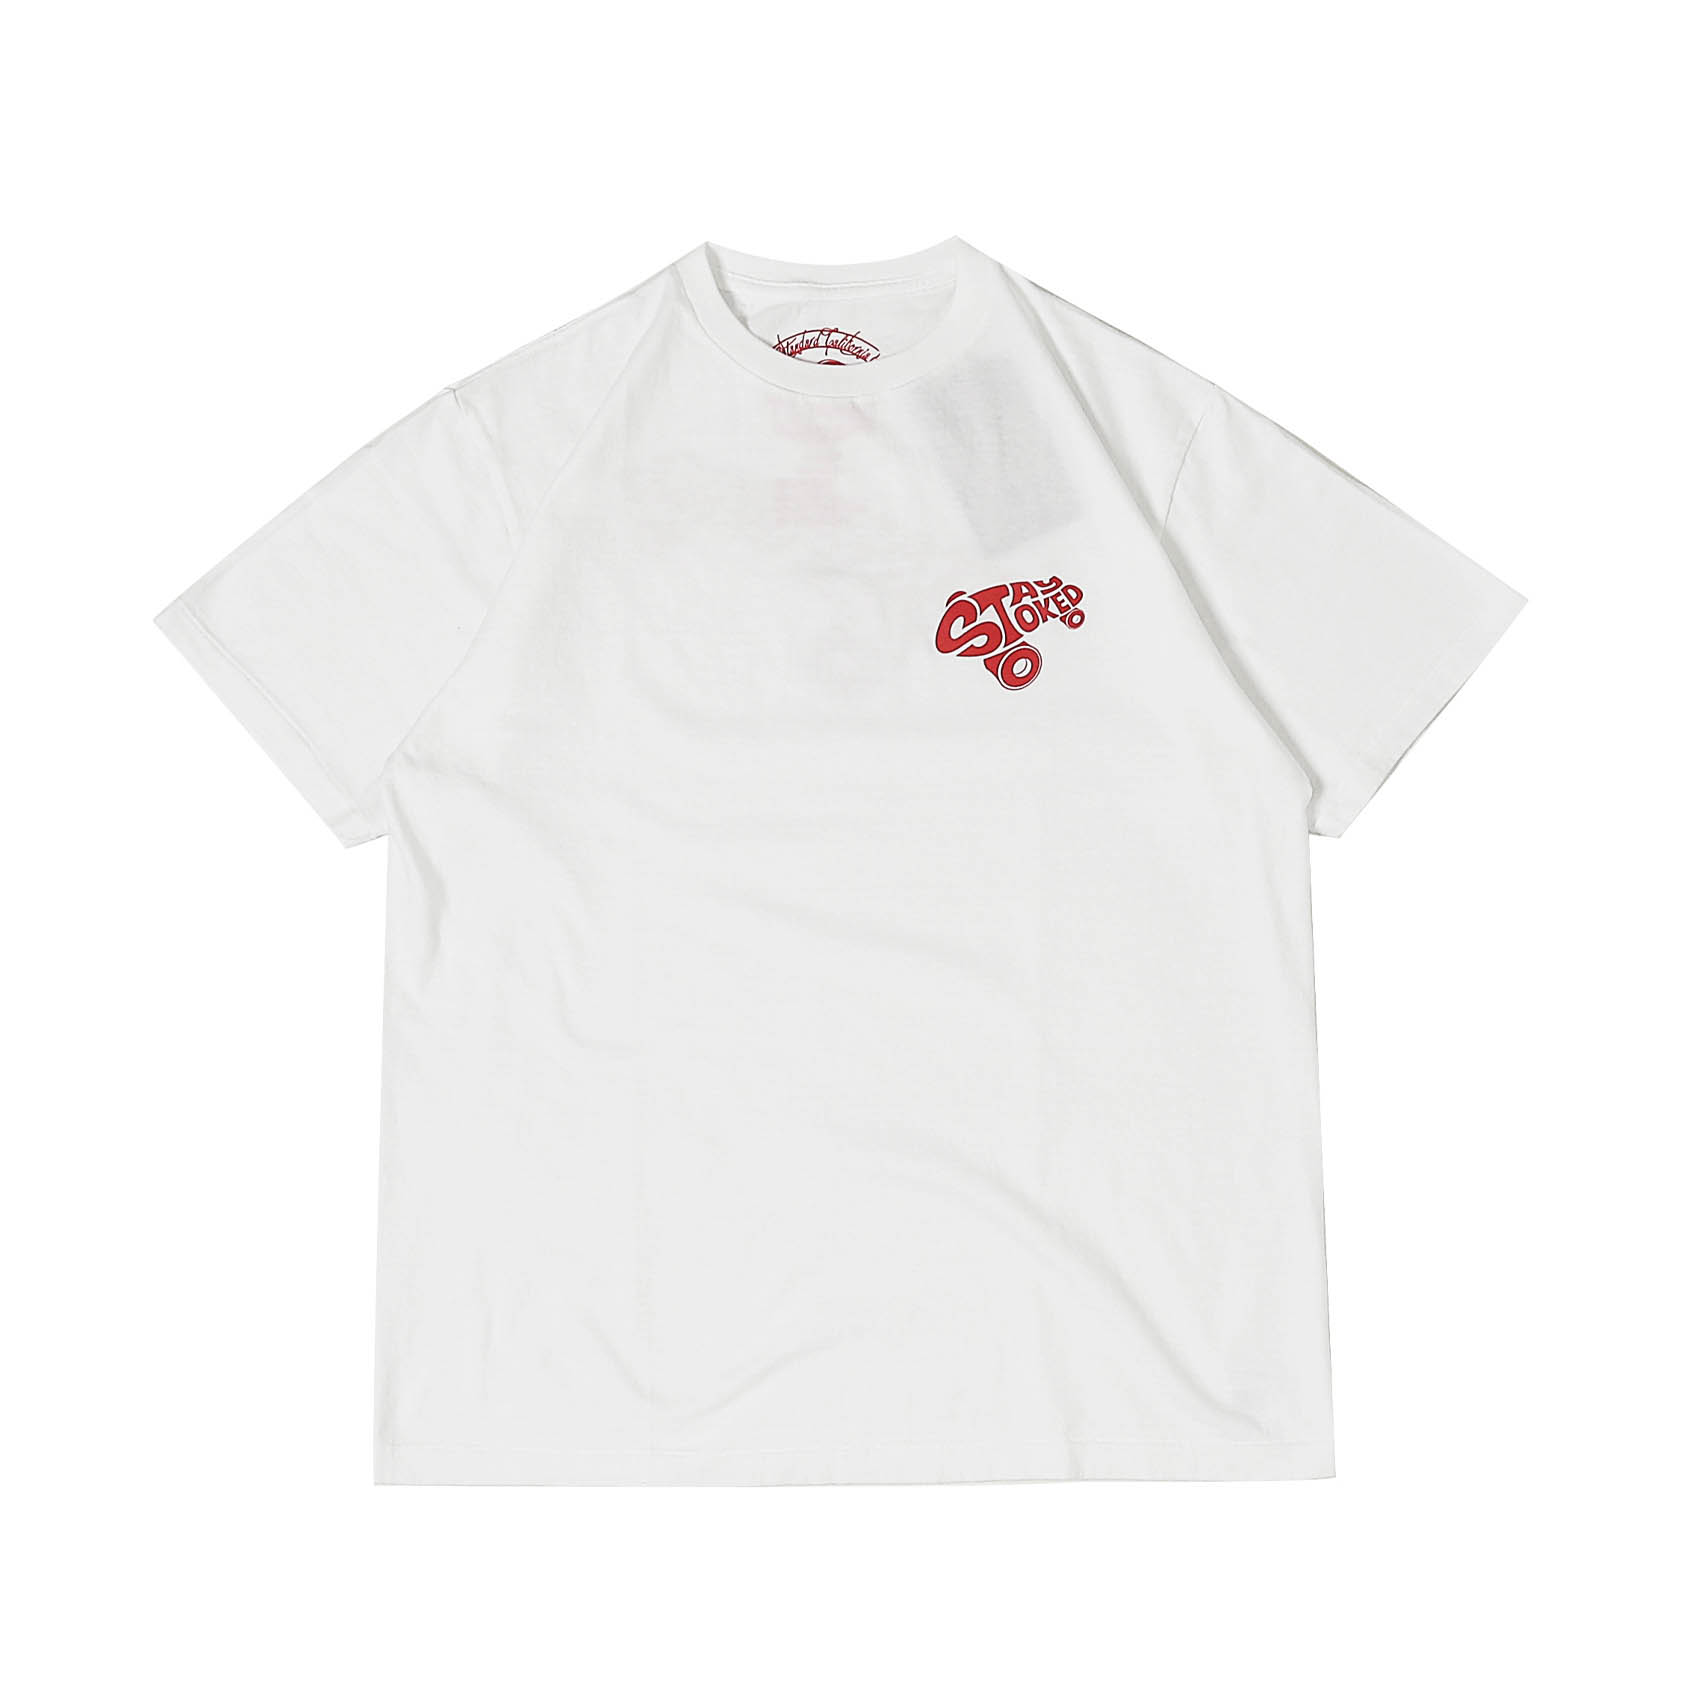 STAY STOKED TEE - WHITE